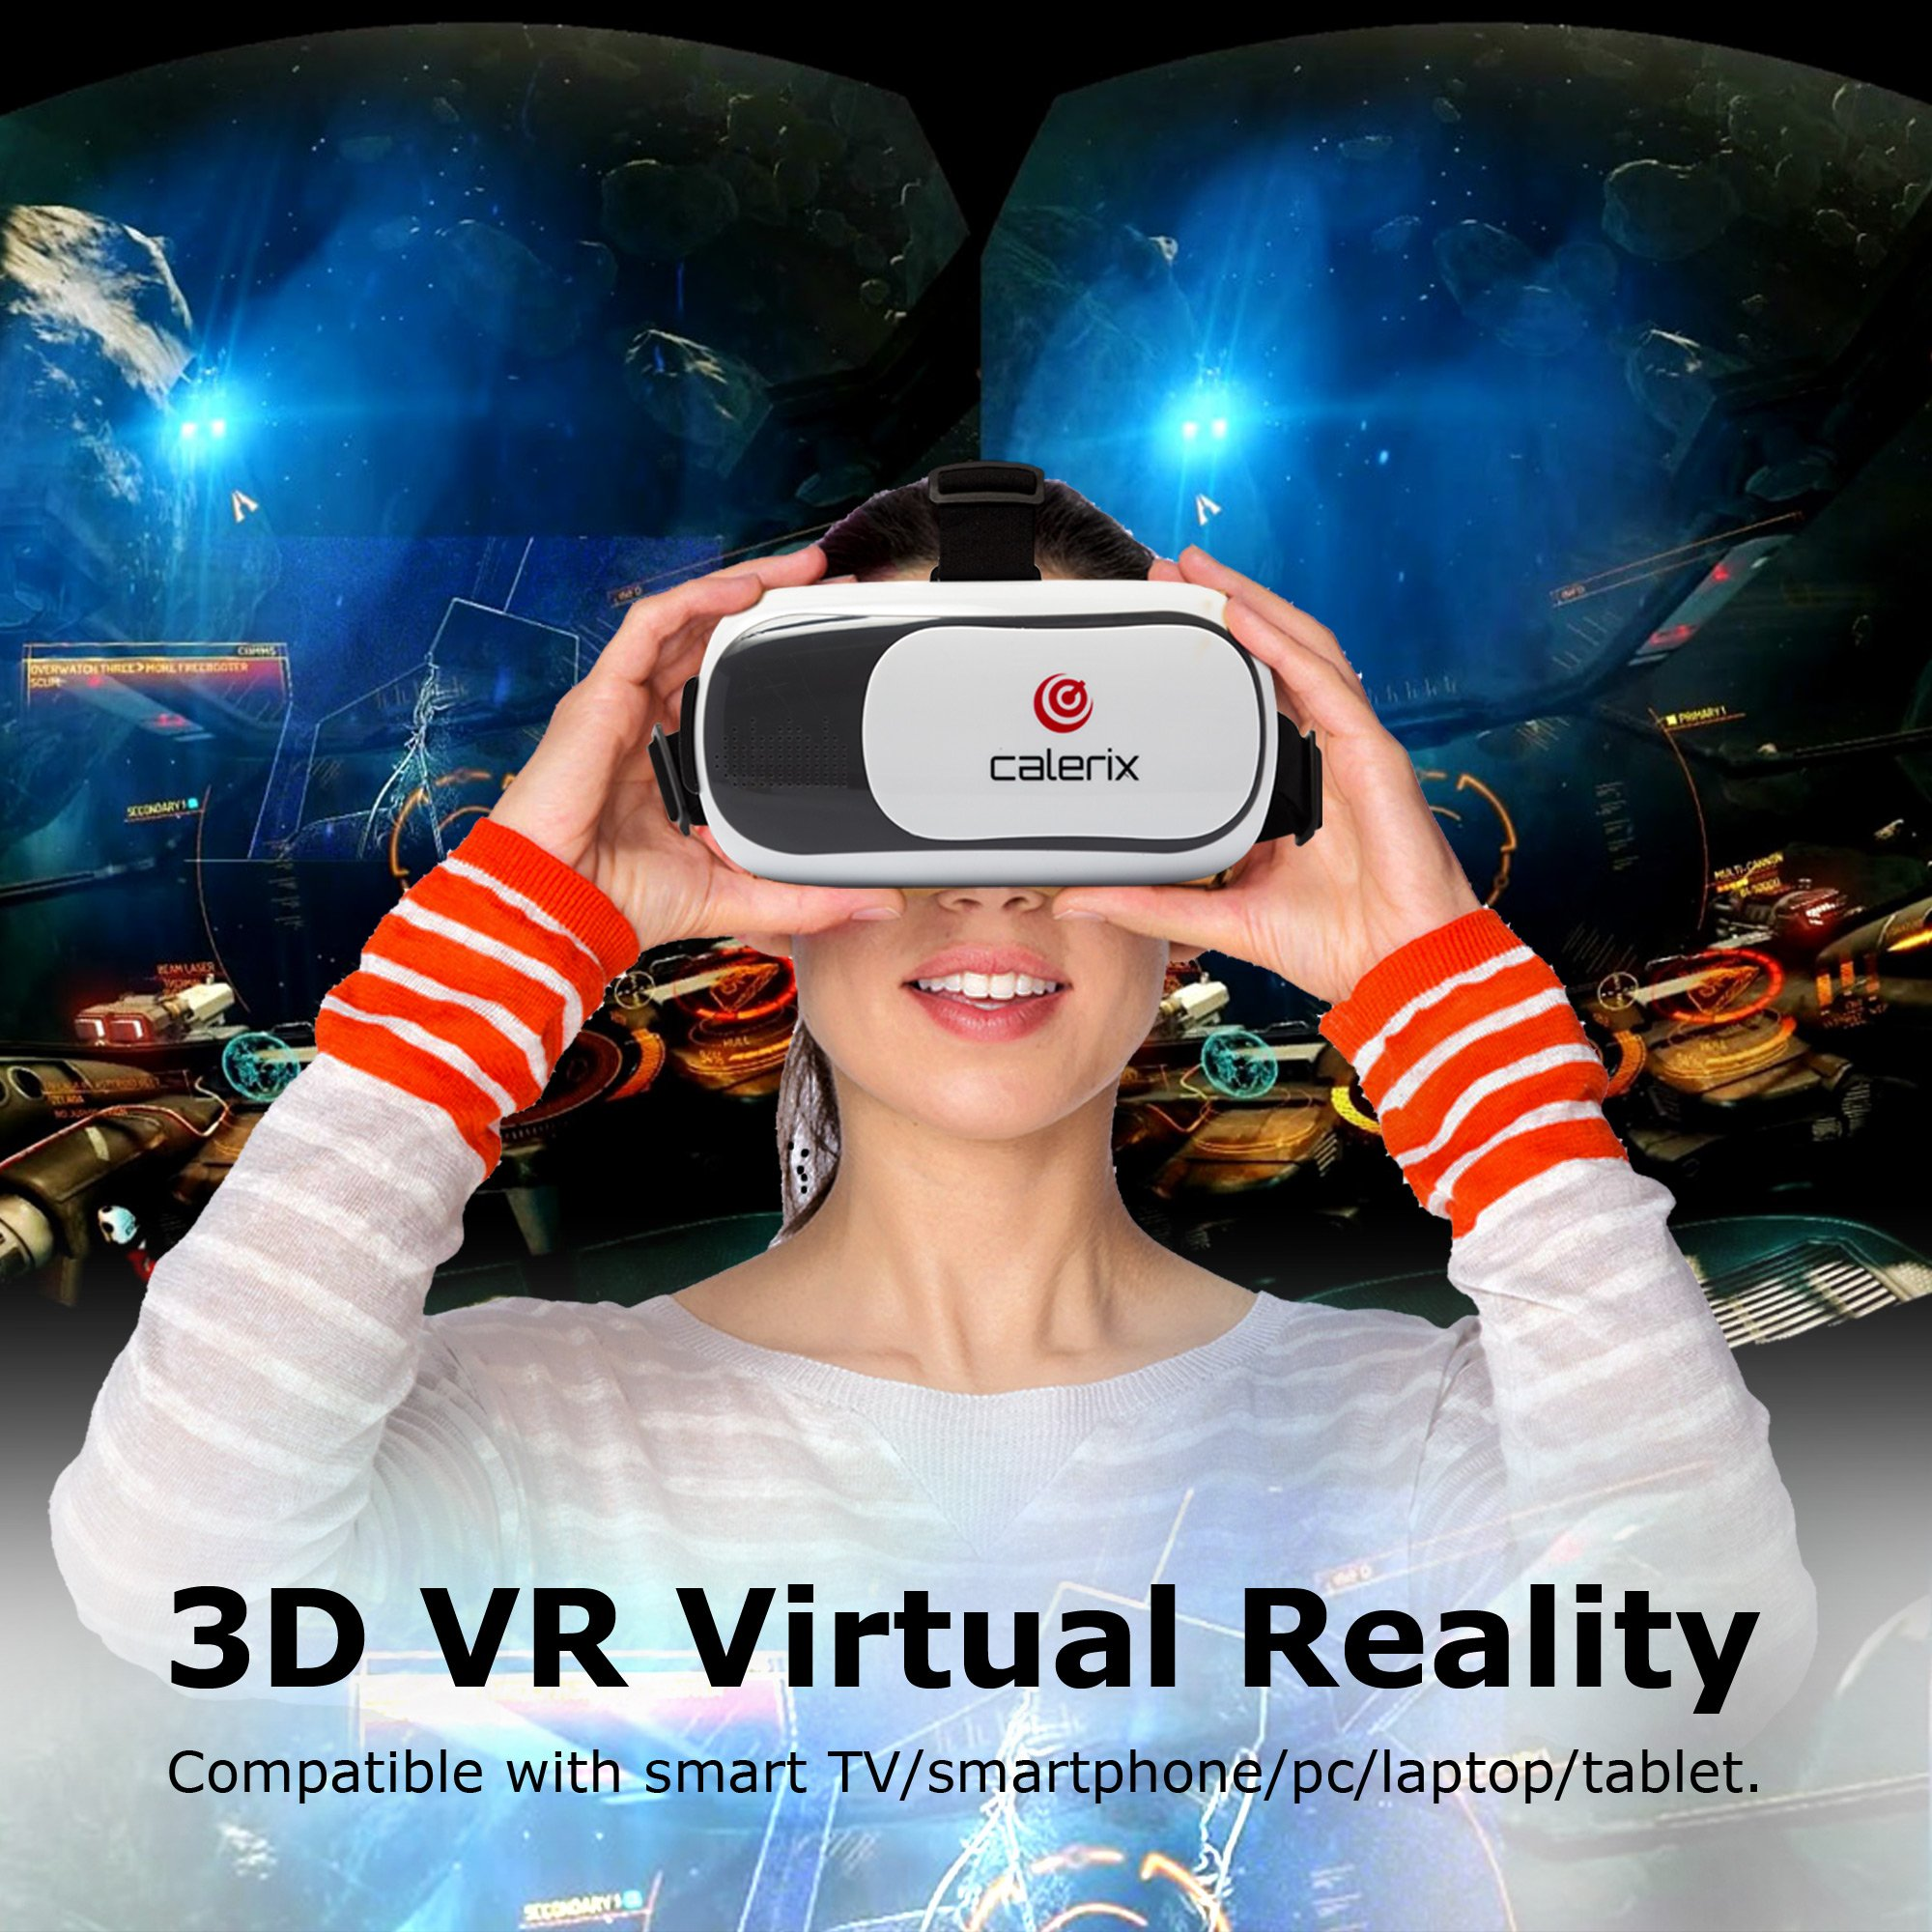 3D Virtual Reality Game Glasses Gaming Headset by Calerix Cardboard Kit Mobile Cinema Helmet with Bluetooth Remote Control and Blue-Ray Compatible with Smartphone iPhone Samsung Android by Calerix (Image #9)